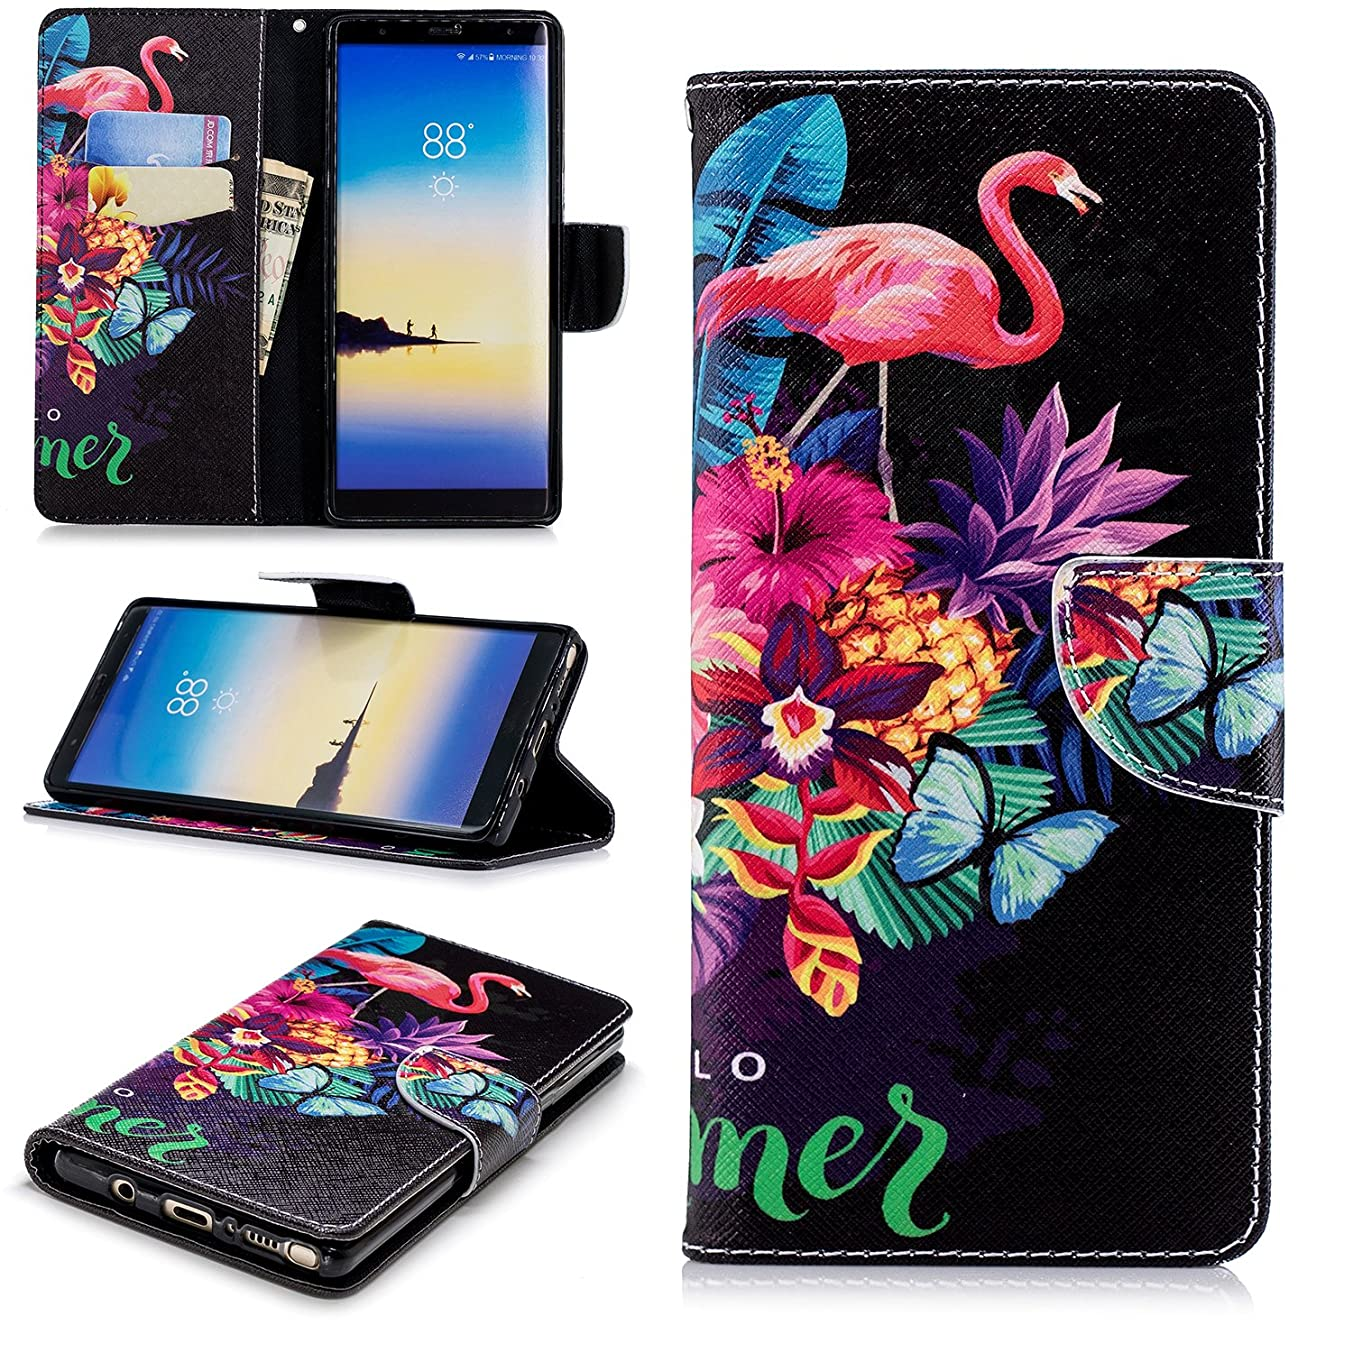 Galaxy Note 8 Wallet Case, Galaxy Note 8 Case, Dooge [Kickstand Feature] Premium PU Leather Folio Flip Protective Case with Cash Card Slots Holder/Magnetic Closure for Samsung Galaxy Note 8